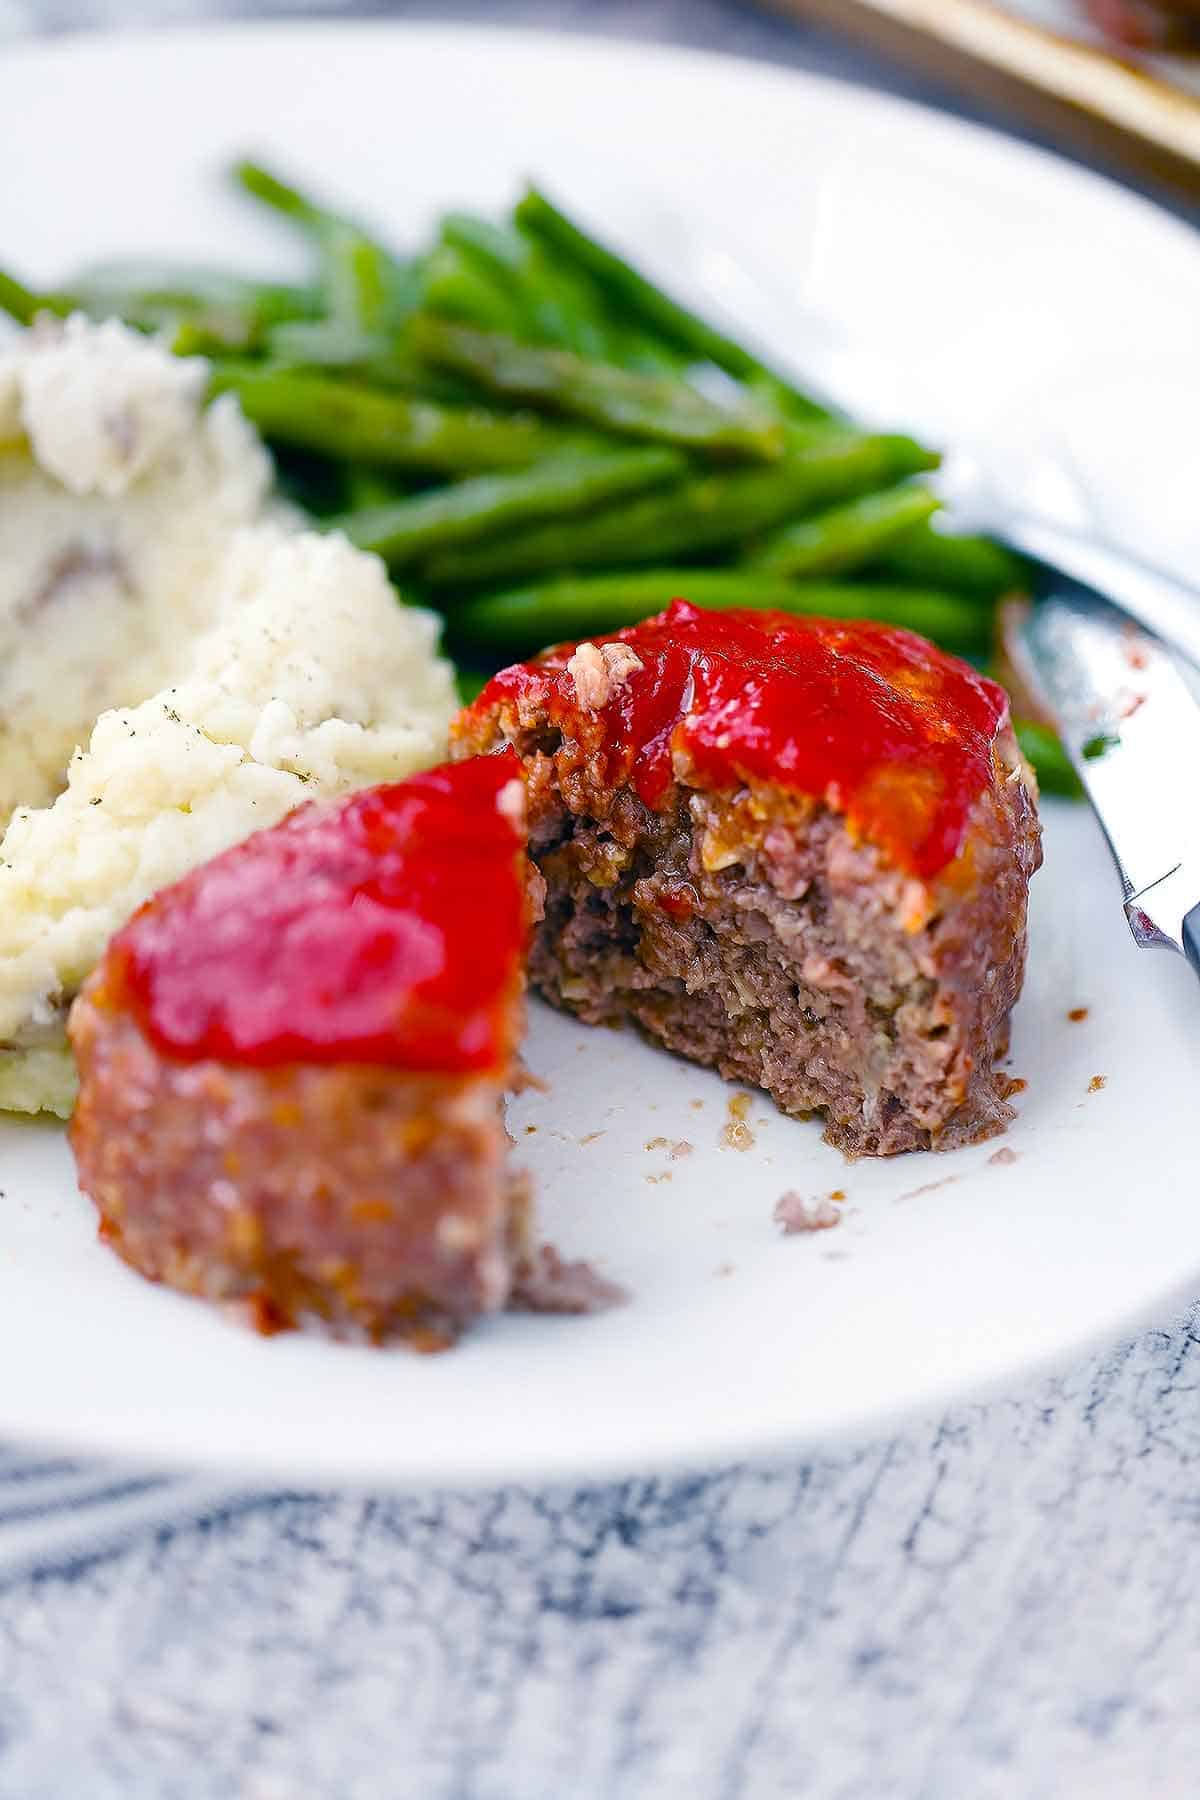 Mini meatloaves are delicious and adorable, but they also are very quick and easy to make, use only 5 ingredients, and can be made in bulk and frozen for later. How easy is that?